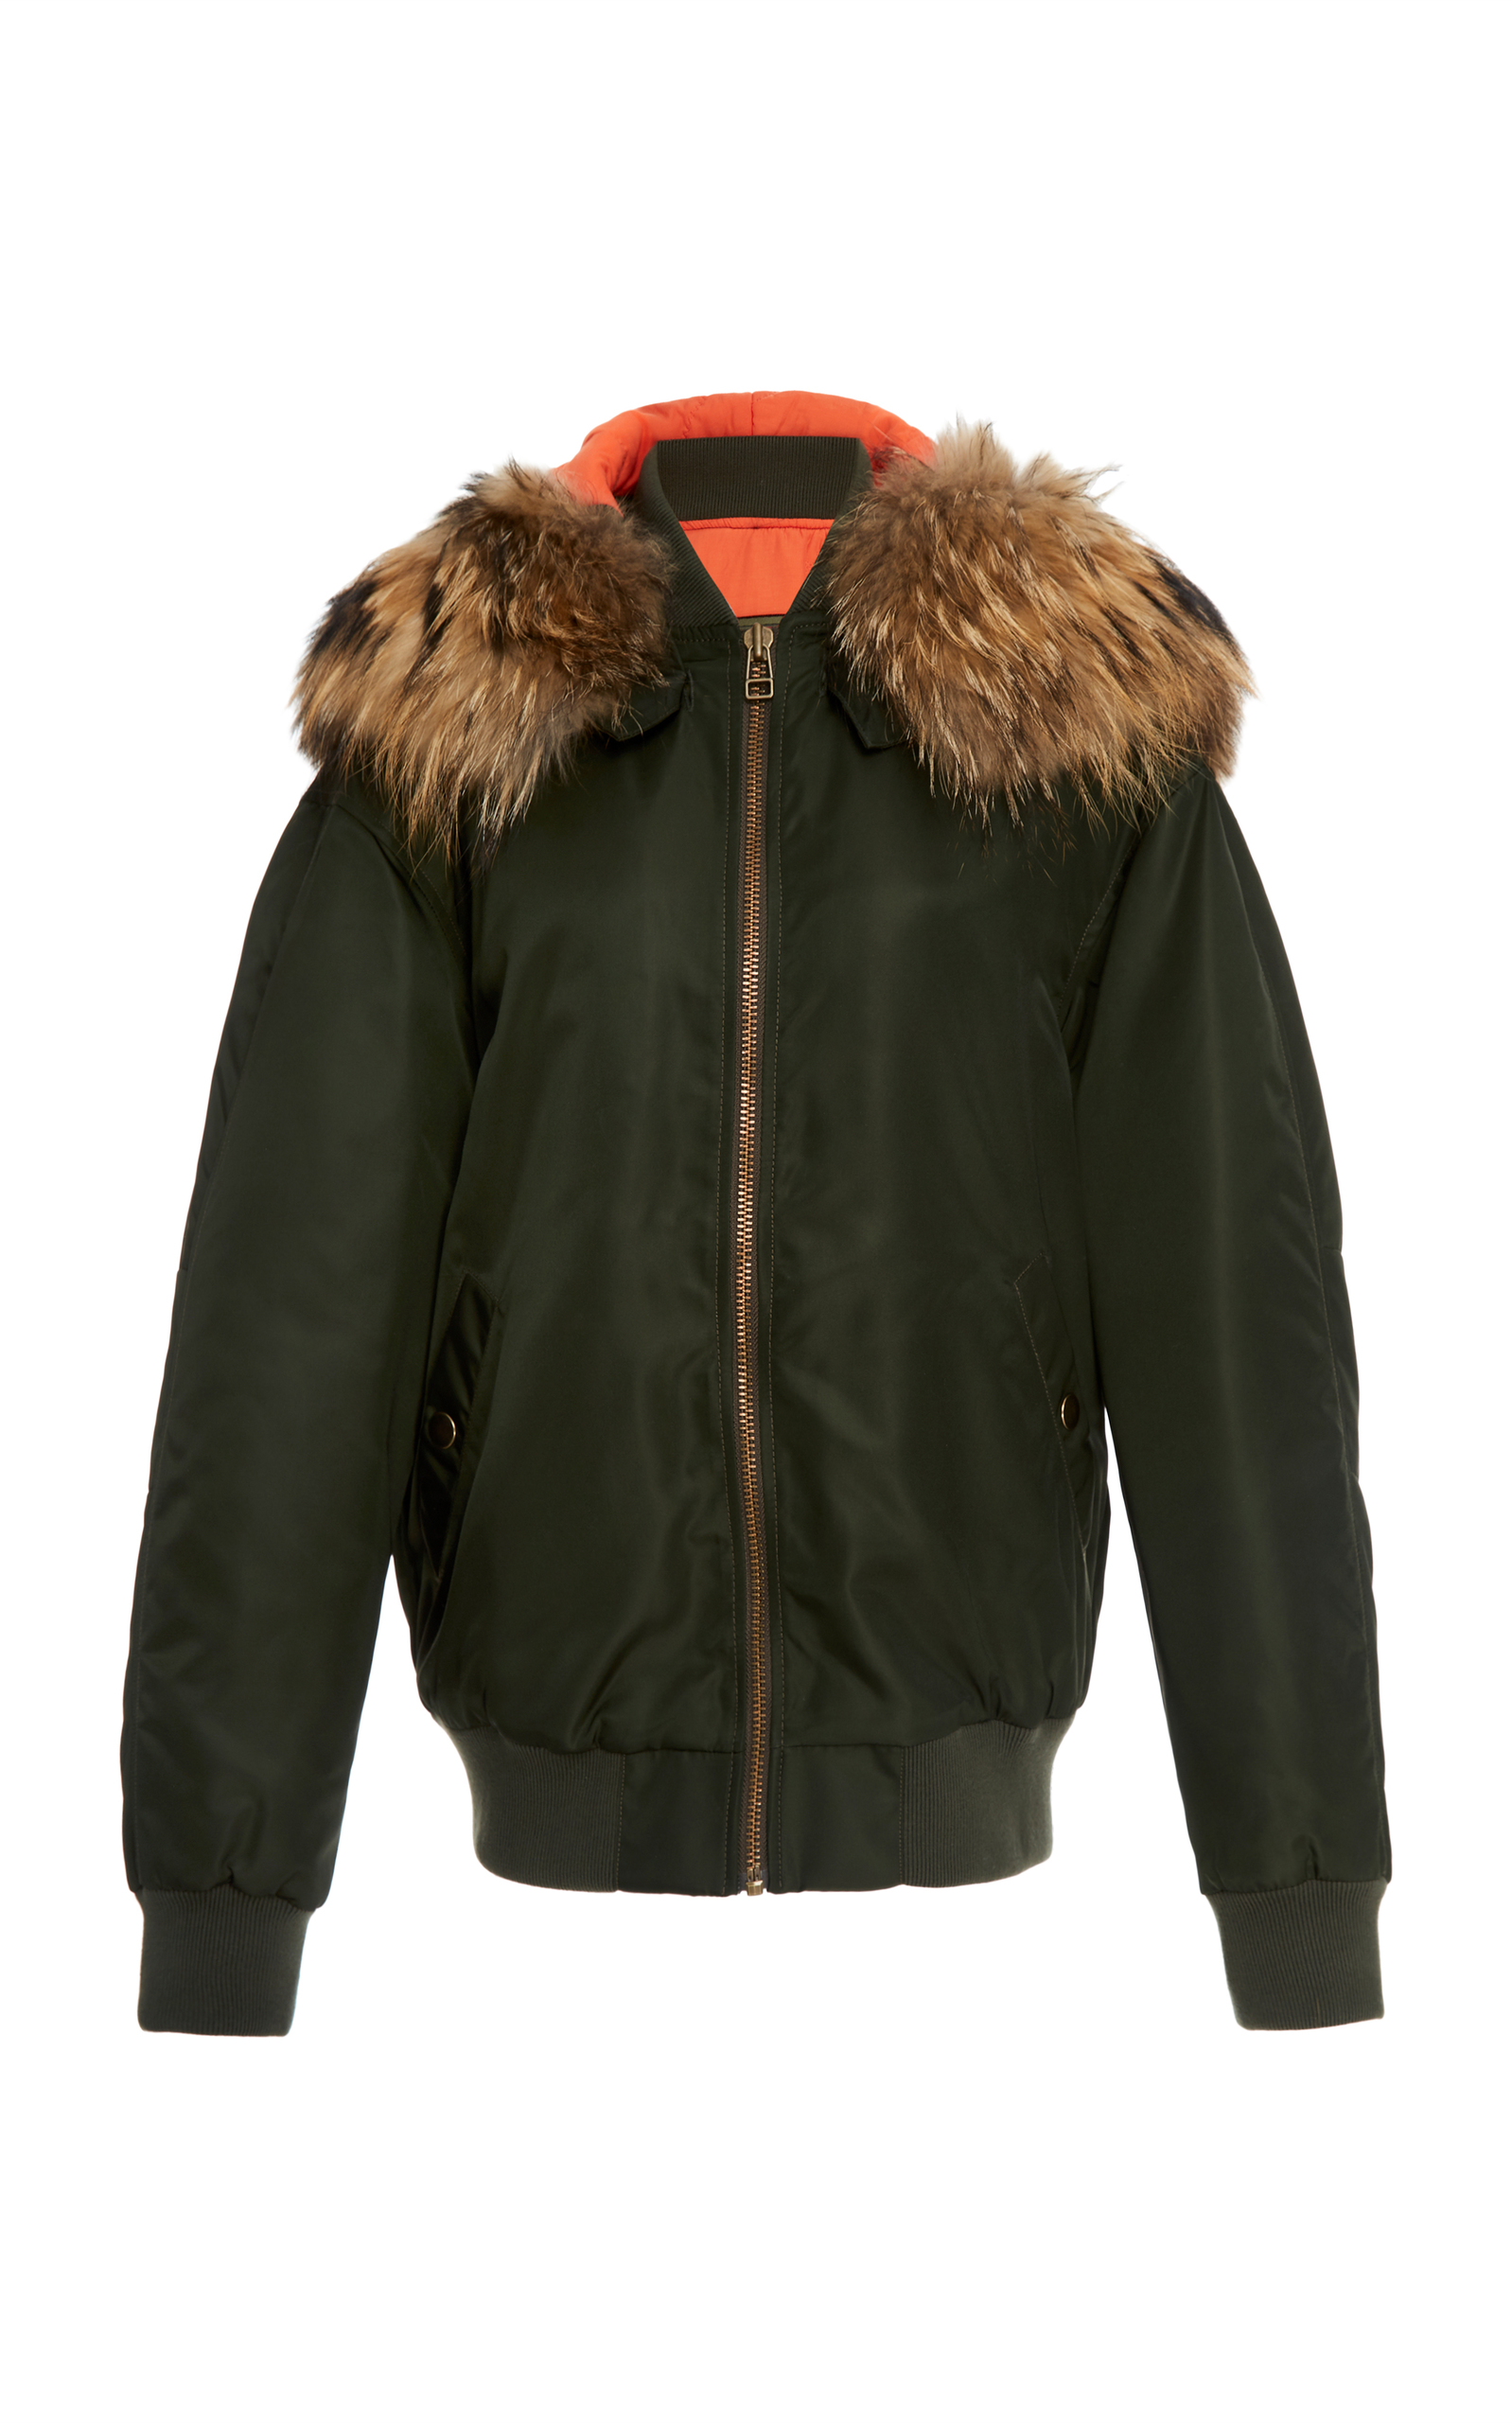 Mr & Mrs Italy multi coloured fur lined bomber jacket Get The Latest Fashion 9yPmK